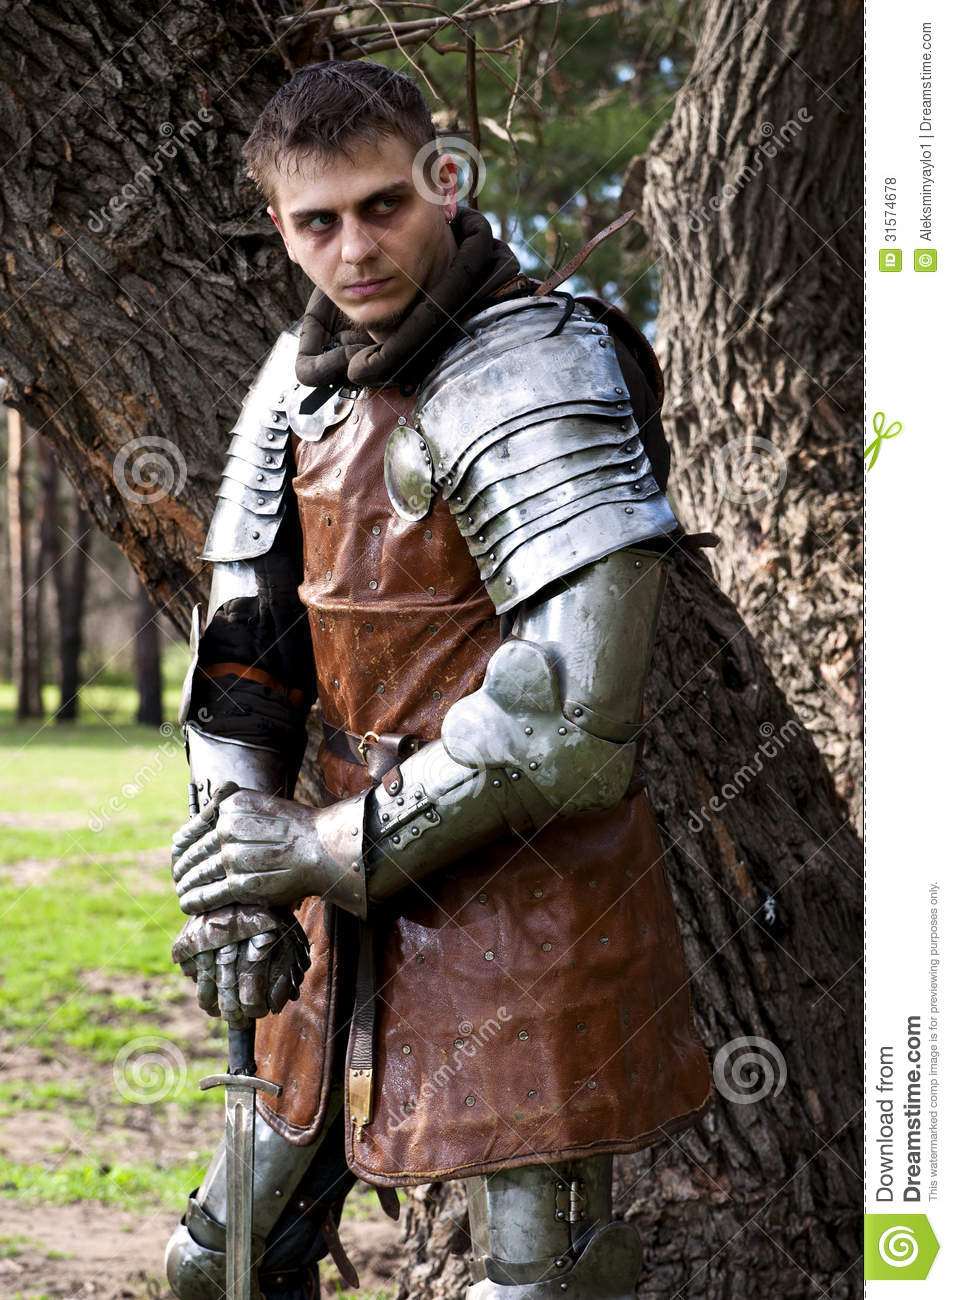 knight with the sword near the tree royalty free stock